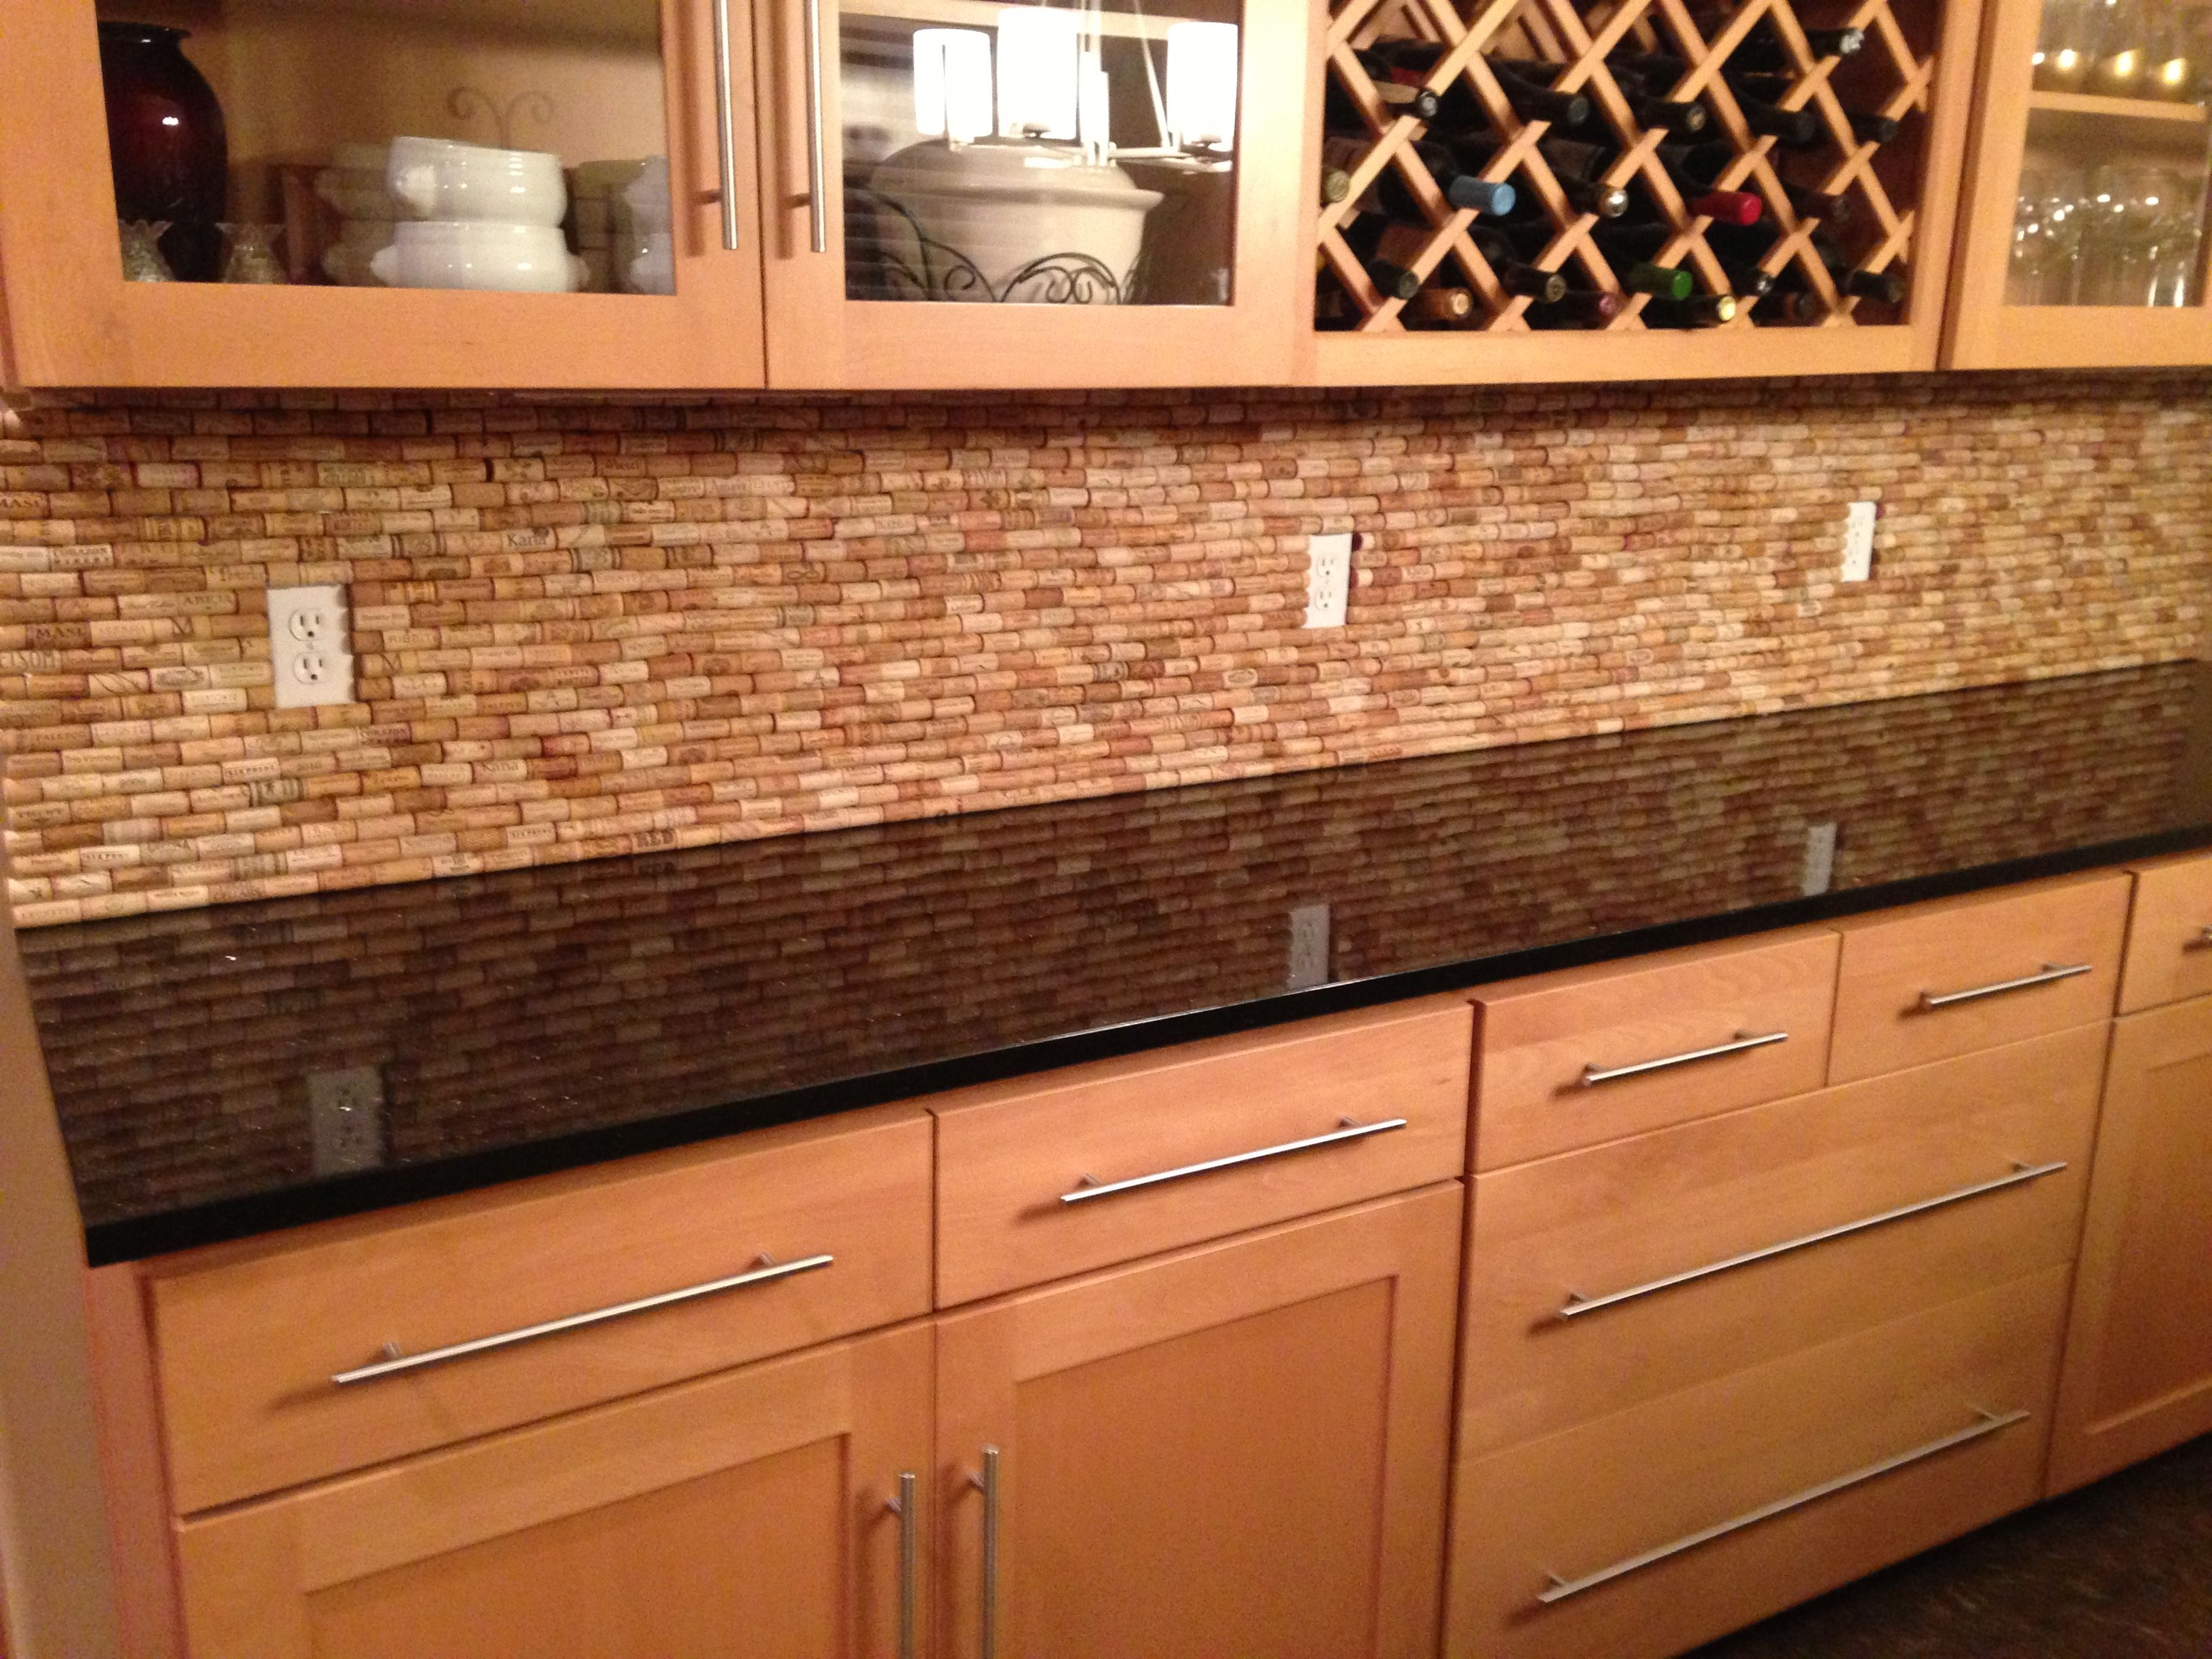 Wonderful Wine Cork Backsplash Part - 7: Wine Cork Backsplash